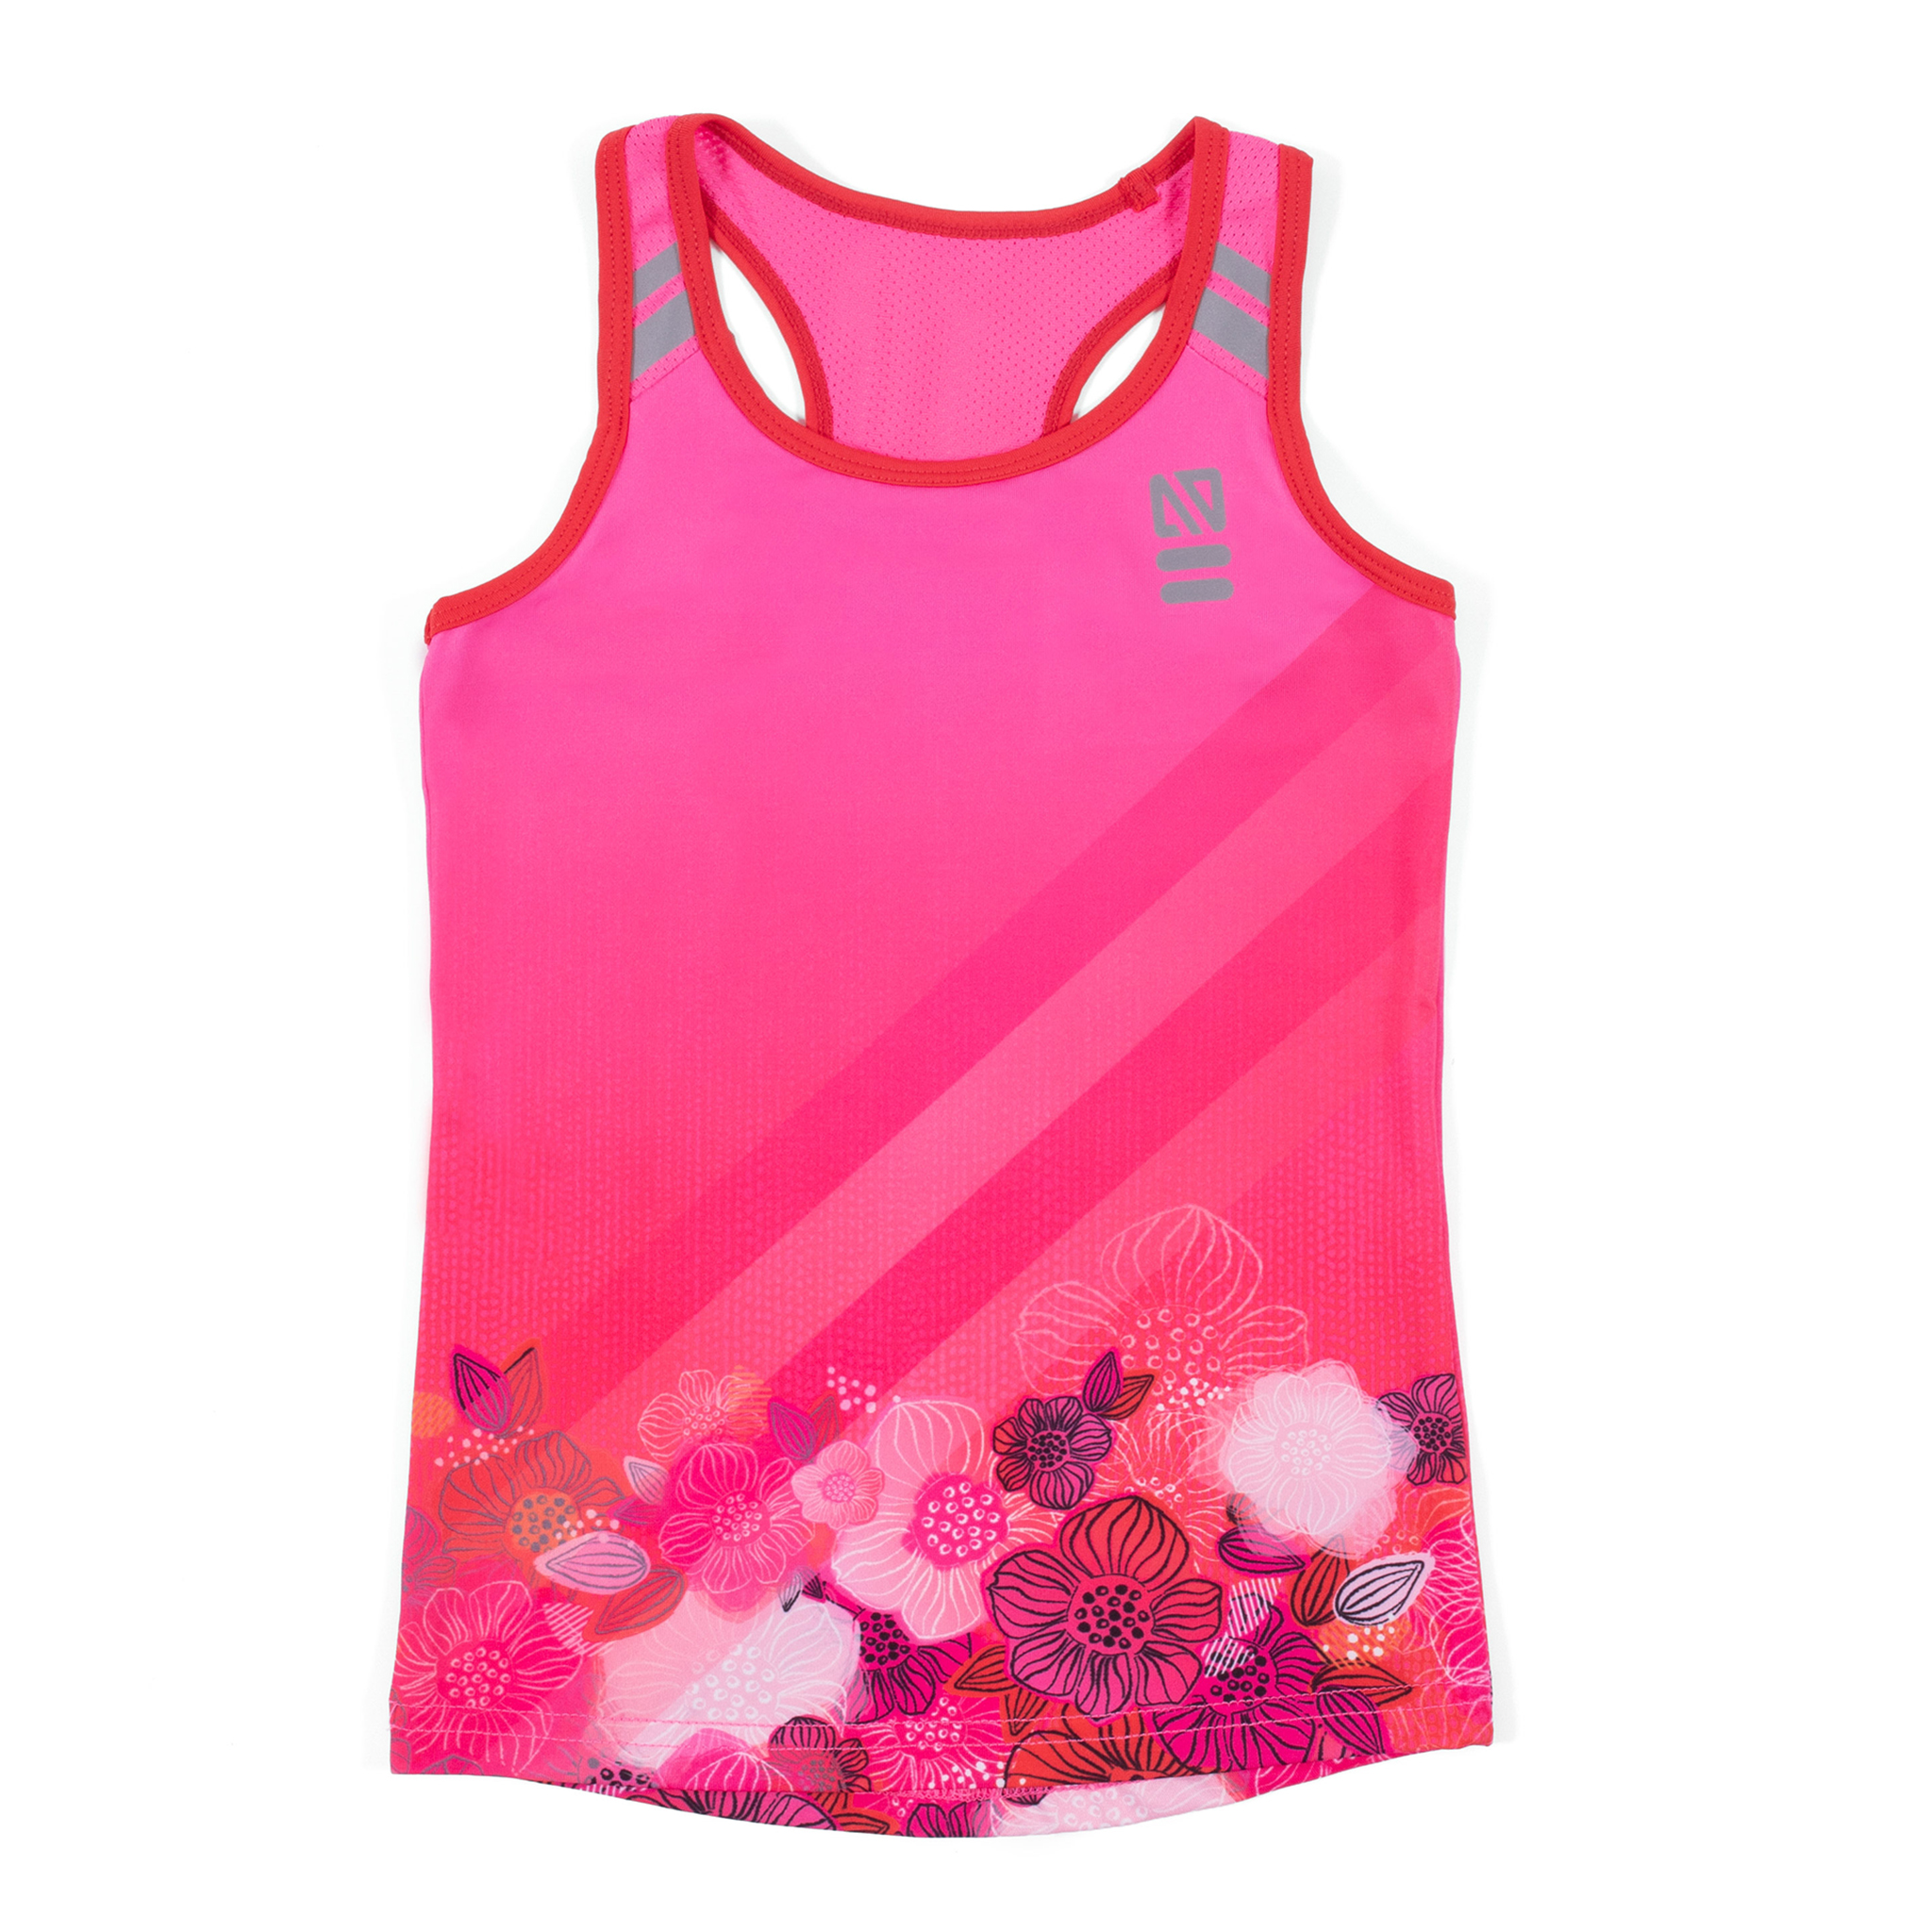 Athletic tank top - Pink - Girls